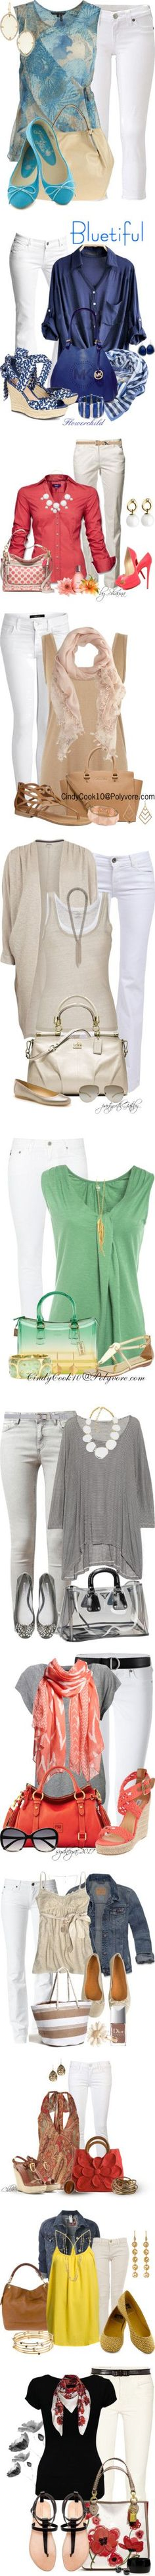 """""""Let's Wear White"""" by esha2001 on Polyvore 